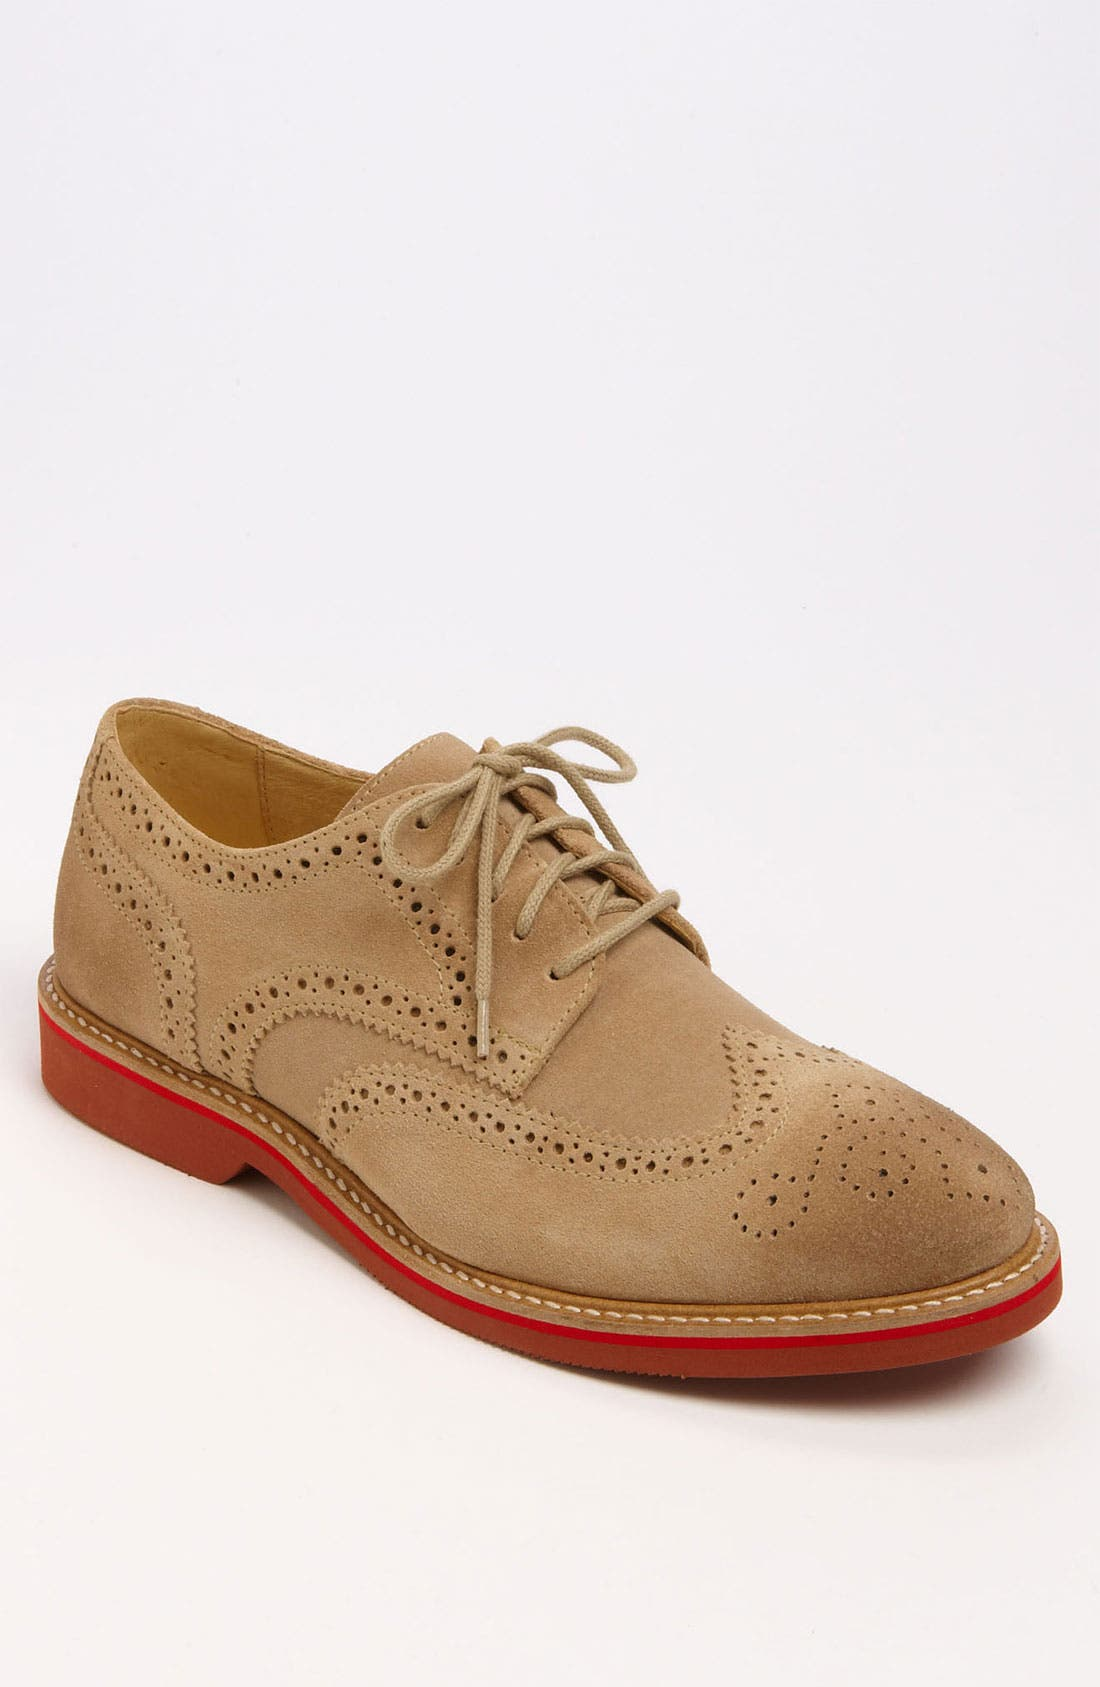 Main Image - 1901 'Wing It' Suede Oxford